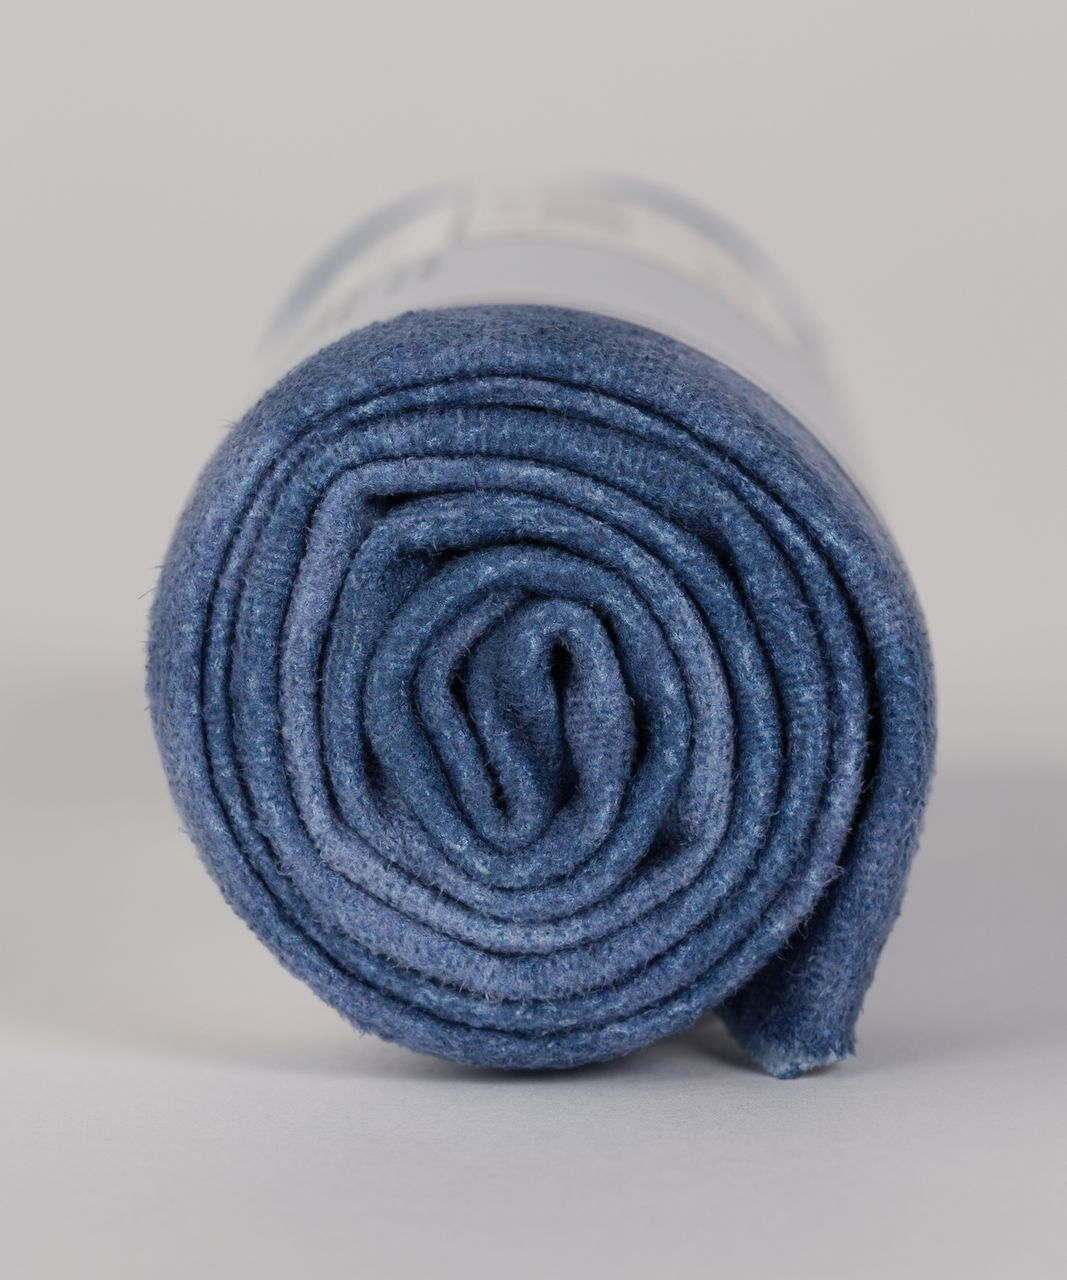 Lululemon The (Small) Towel - Tidal Trip Sailboat Blueberry Jam